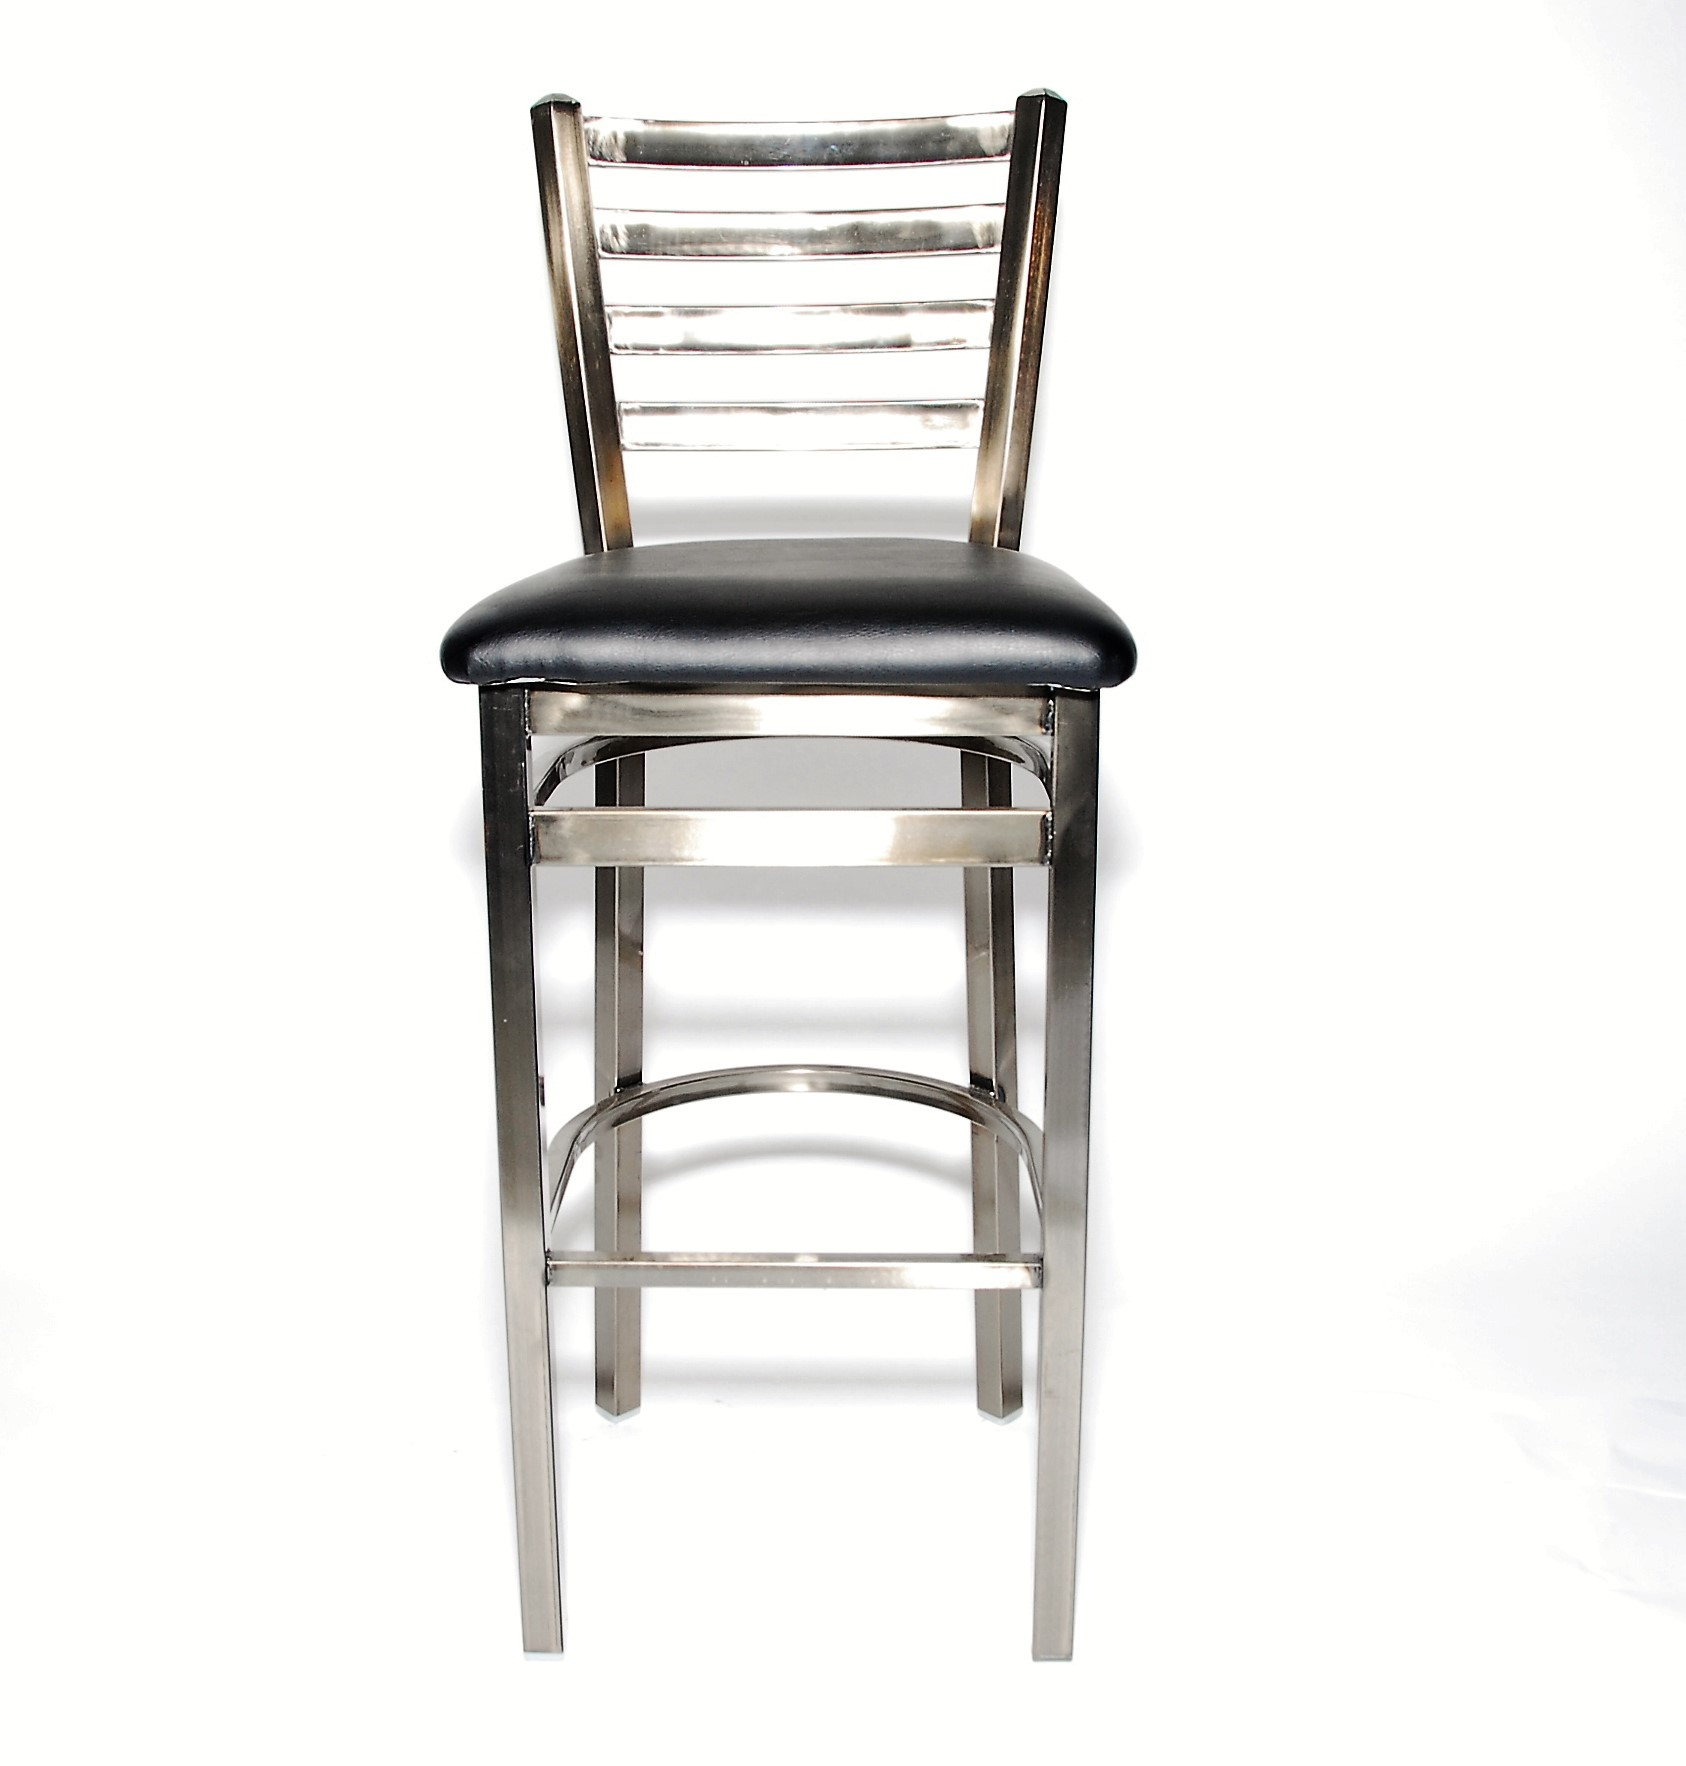 Iron Guard-2301 Bar Stool Clear, Ladderback Frame - Black Vinyl Seat, Gloss Finish| Public Kitchen Supply